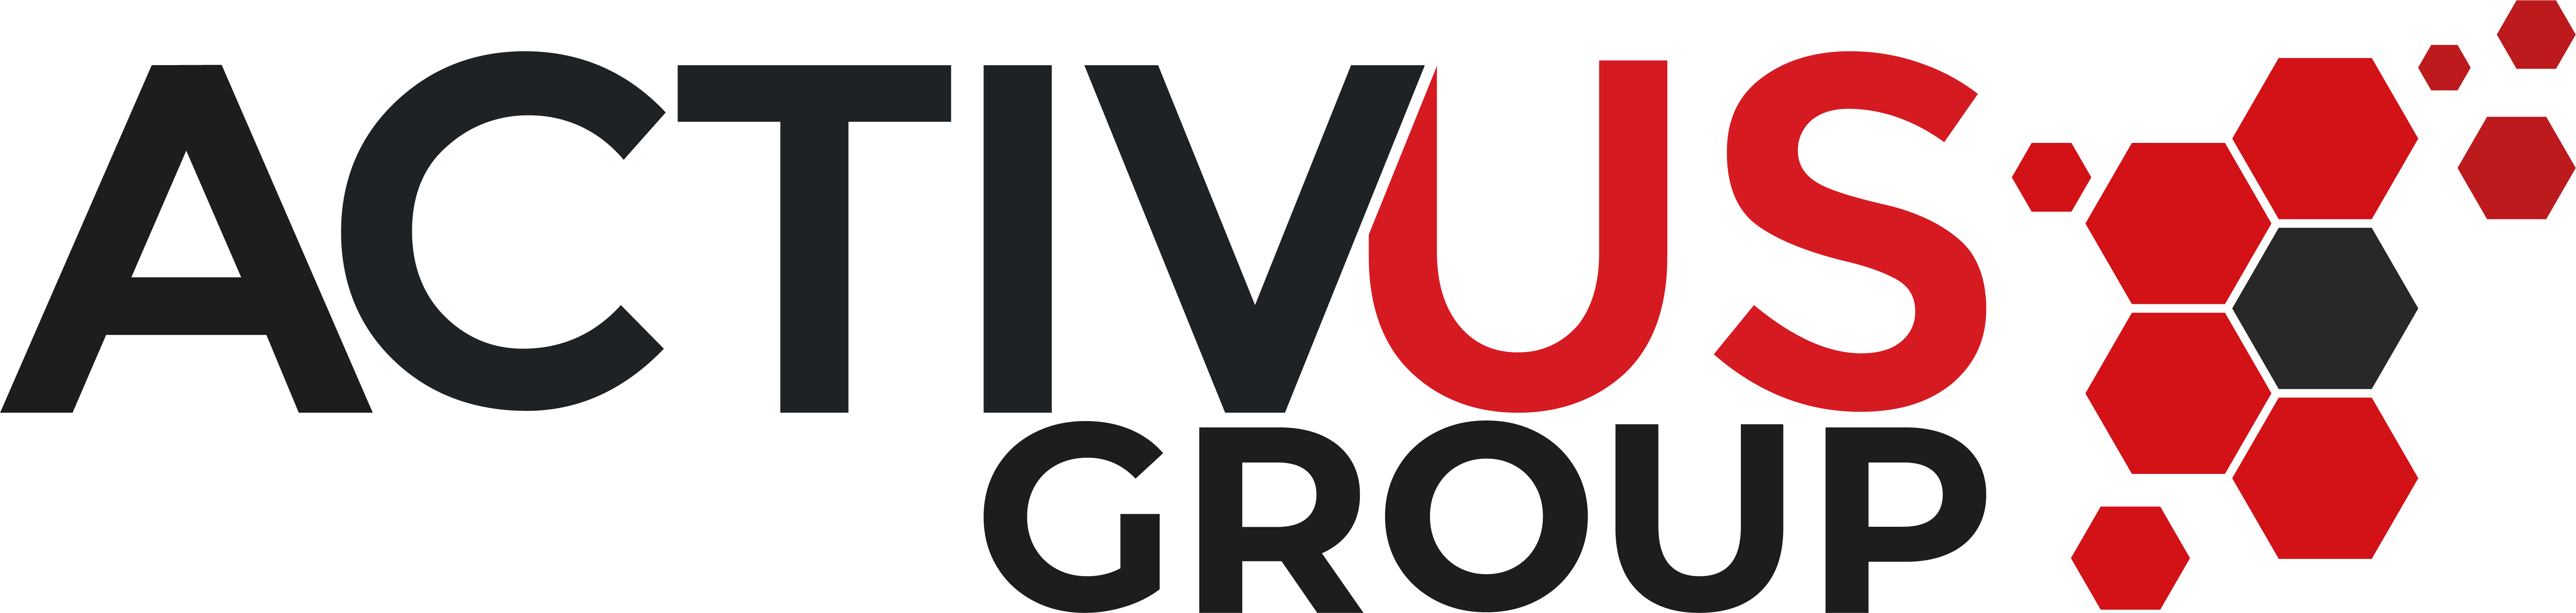 Logo Activus Group